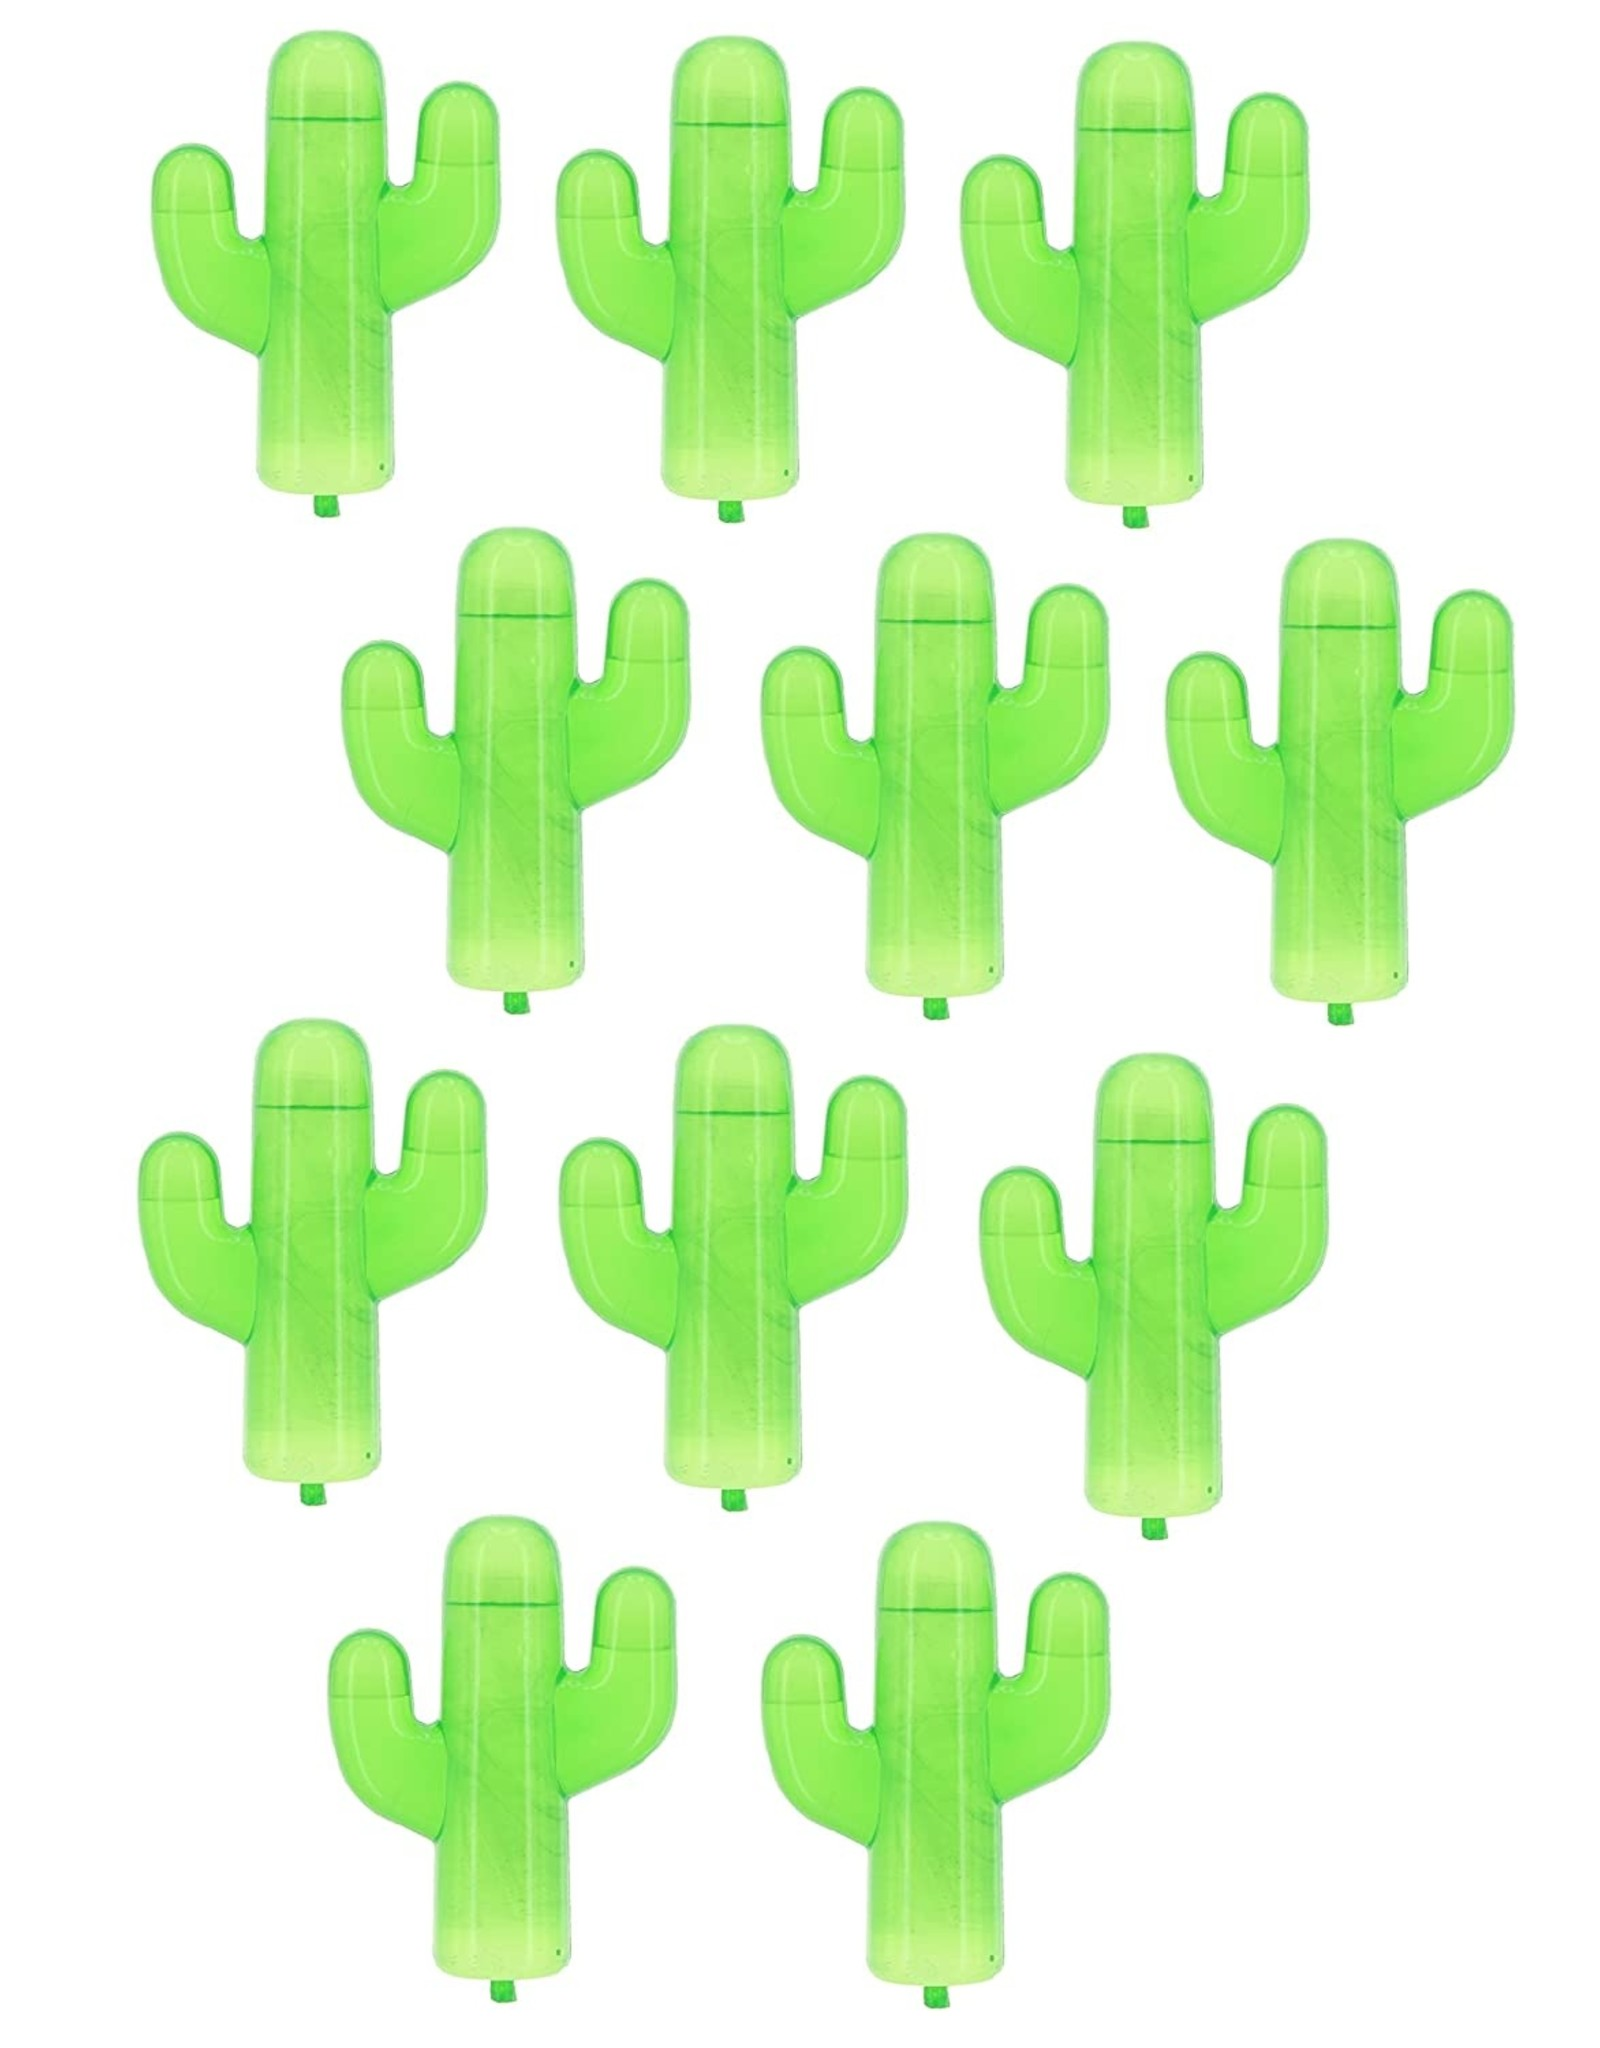 16 reusable ice cubes shaped like a cactus